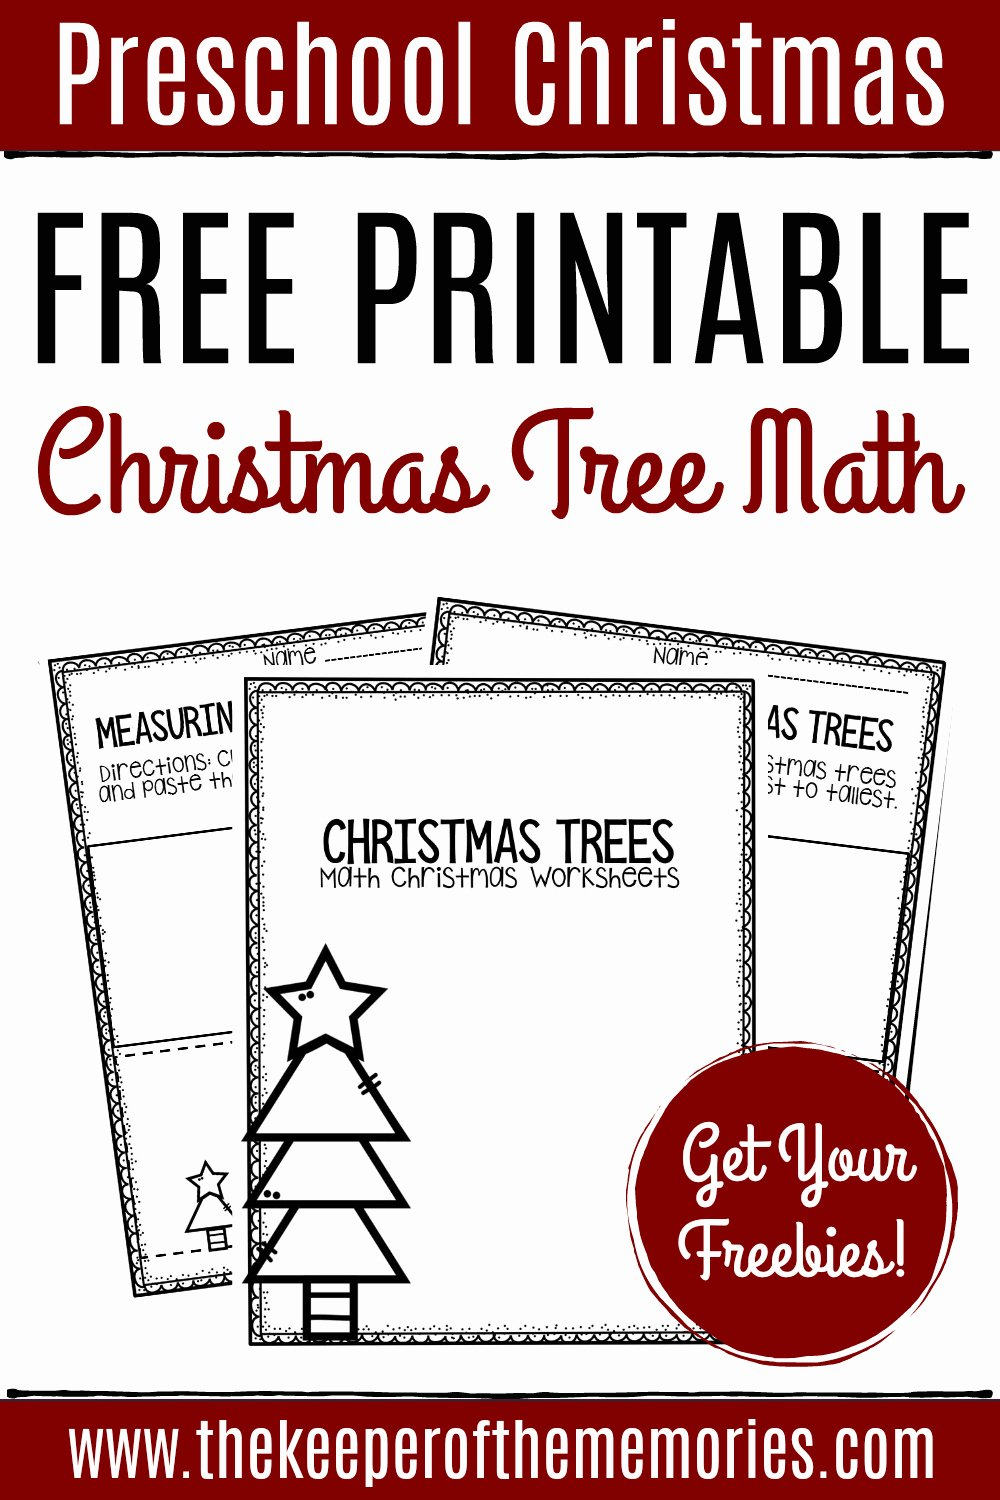 Printable Christmas Worksheets for Preschoolers Lovely Free Printable Measuring Christmas Trees Math Christmas